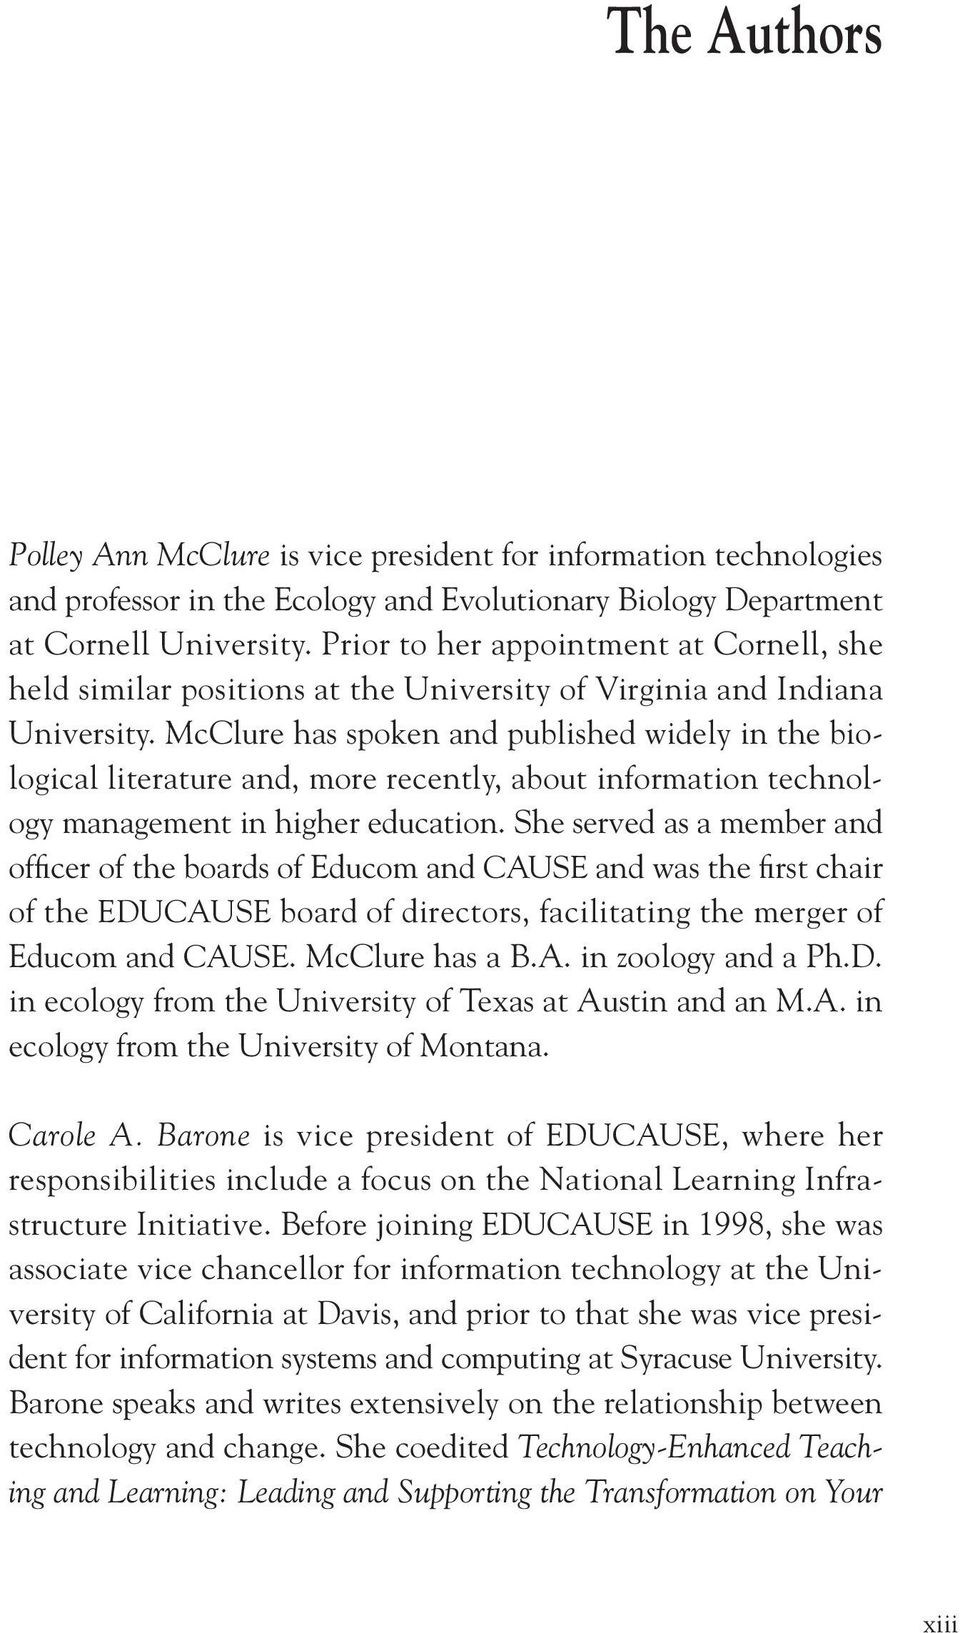 McClure has spoken and published widely in the biological literature and, more recently, about information technology management in higher education.